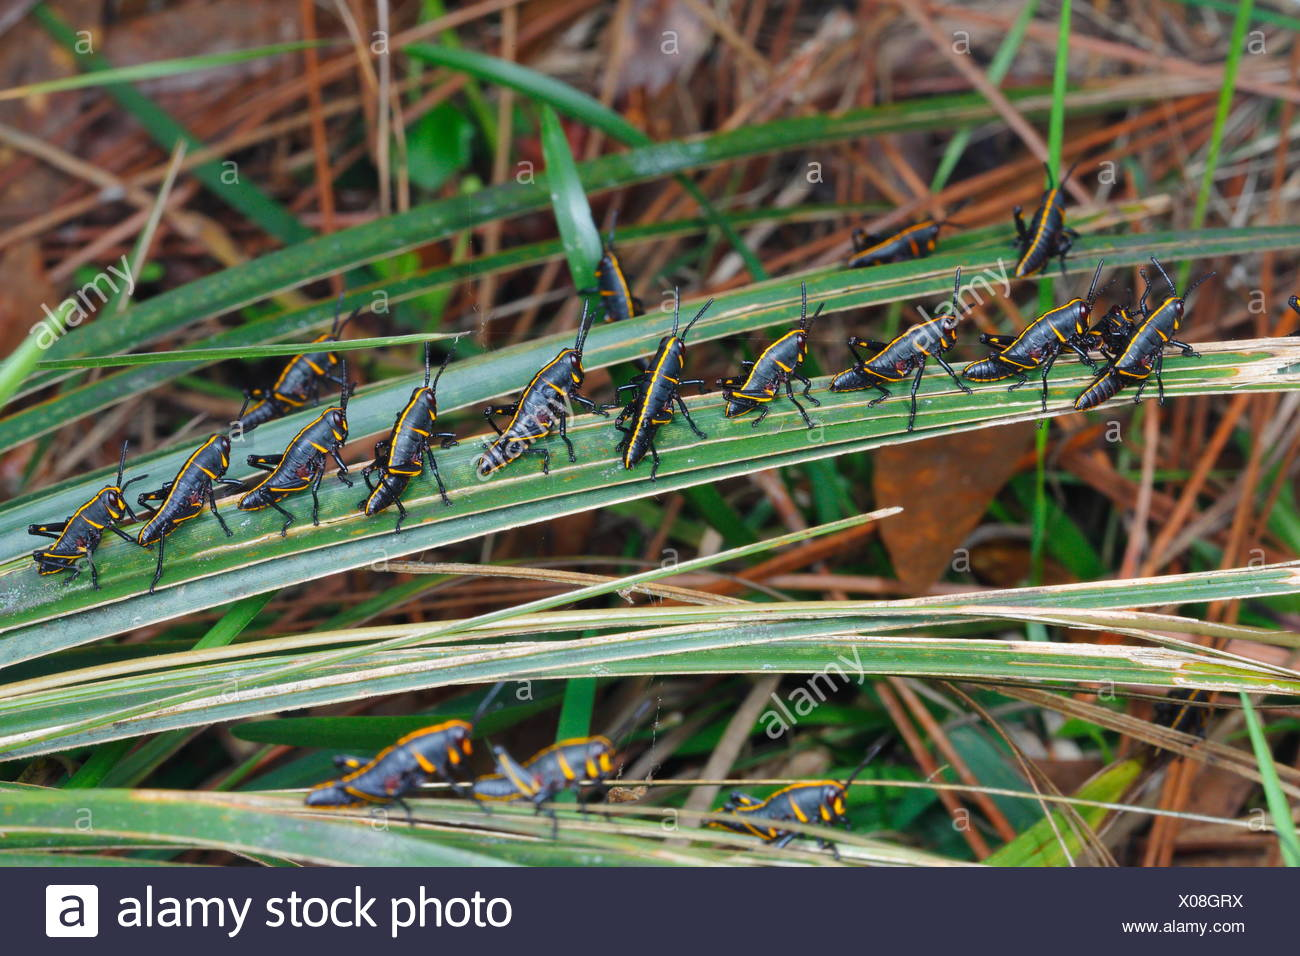 Lubber grasshopper nymphs, Romalia guttata, emerge from the ground in large groups. - Stock Image